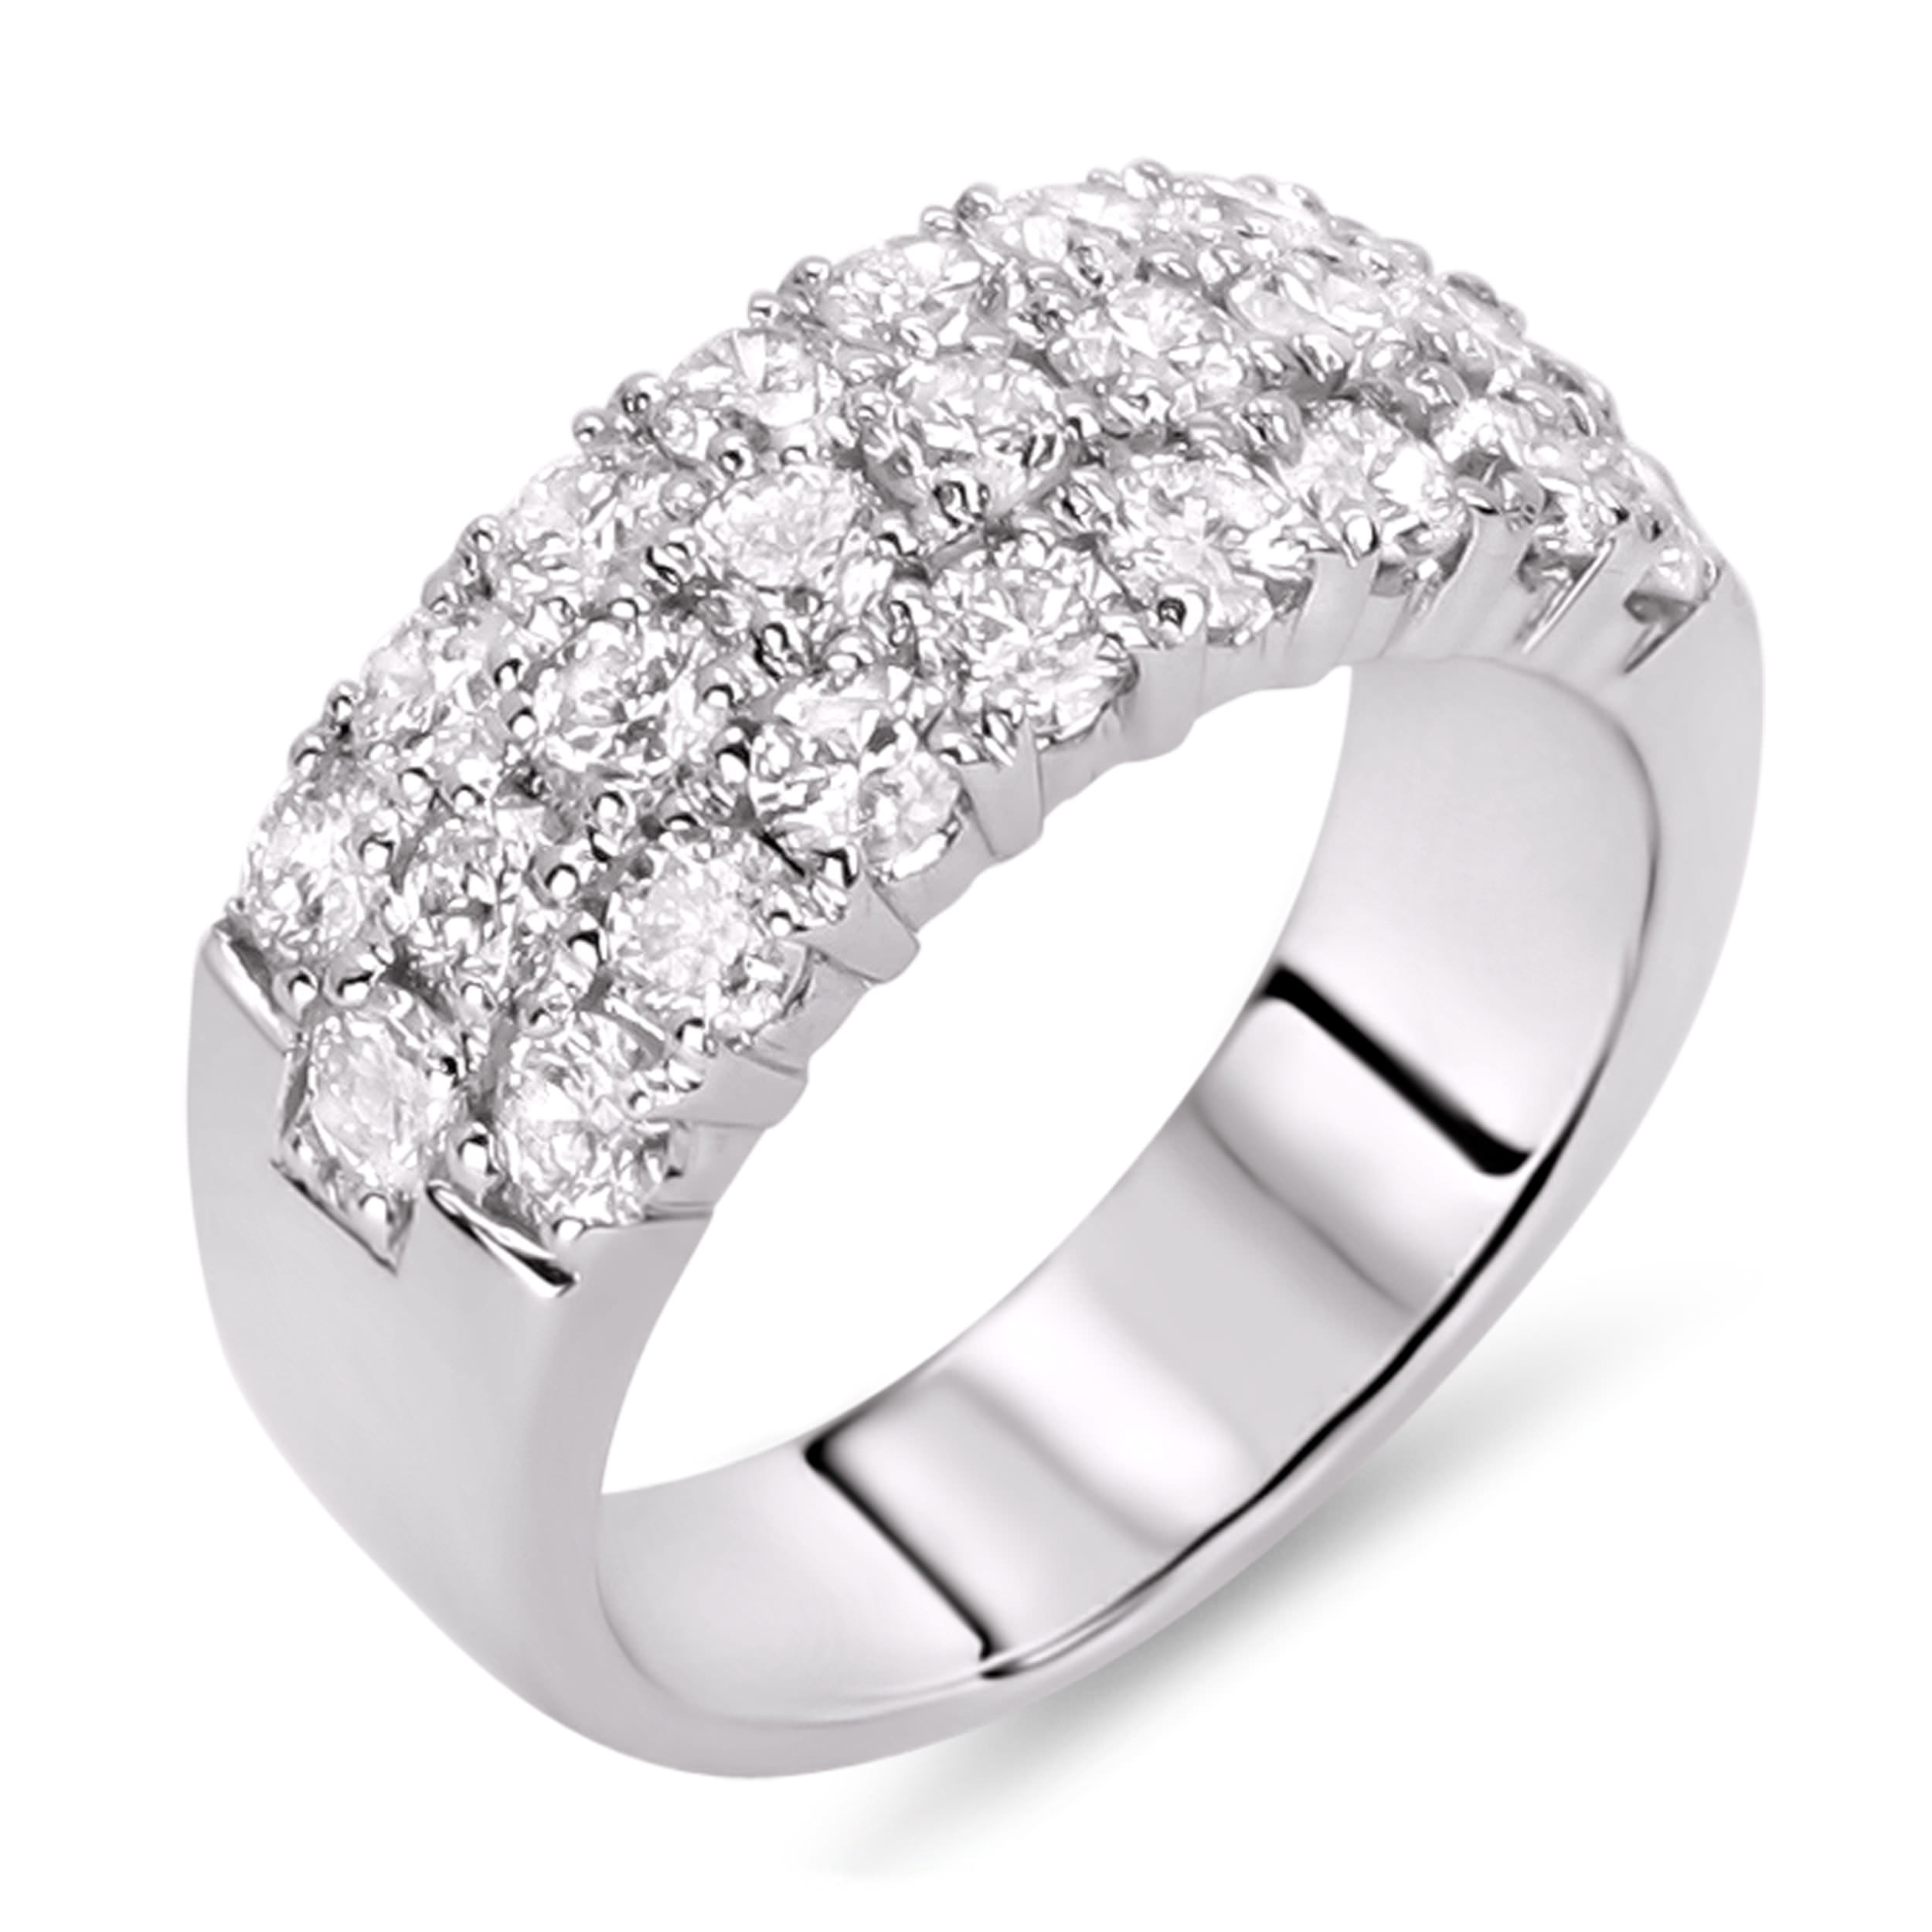 jhvv fullxfull anniversary silver aniversary eternity wedding diamond products promise cz stack ruby bands ring il rings